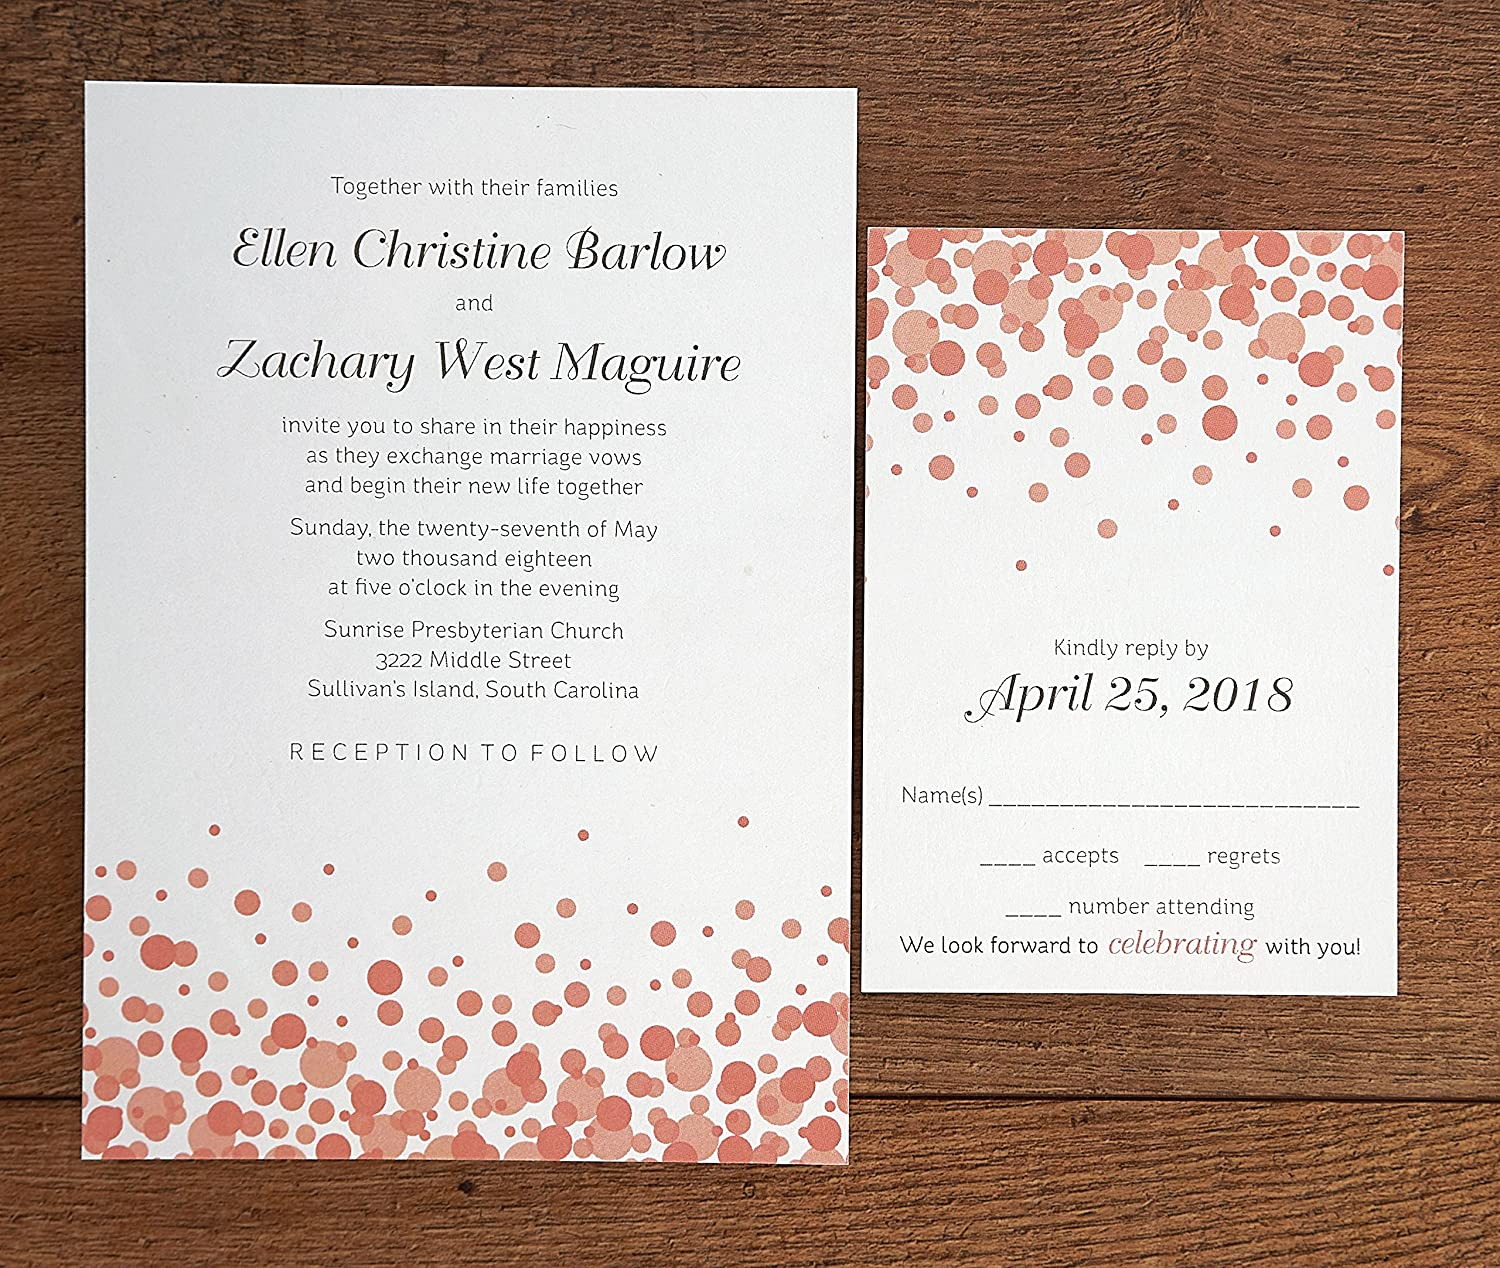 It's just a picture of Printable Wedding Card in wedding day